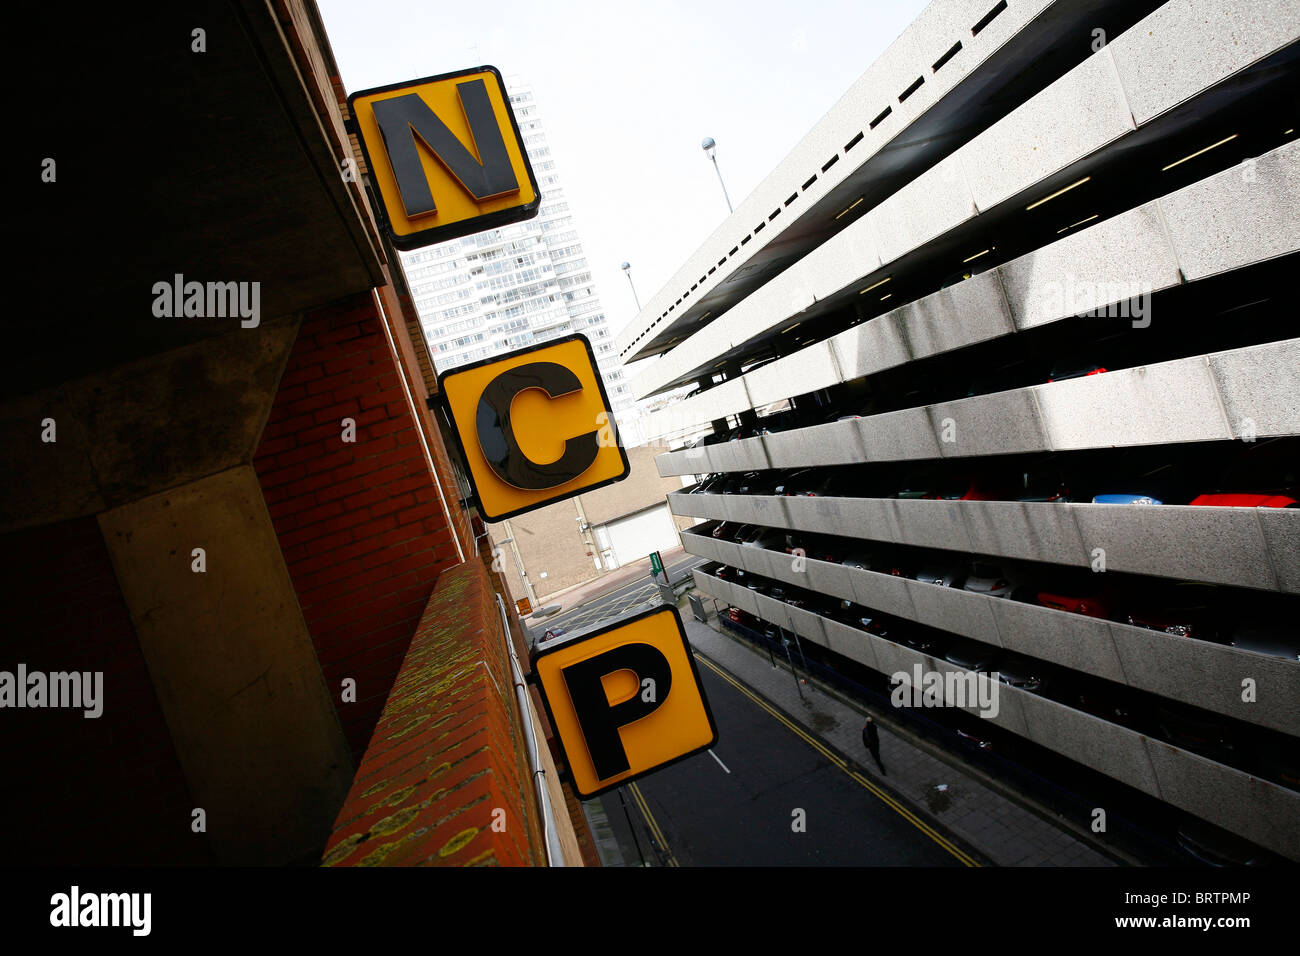 Ncp Car Park In Soho London